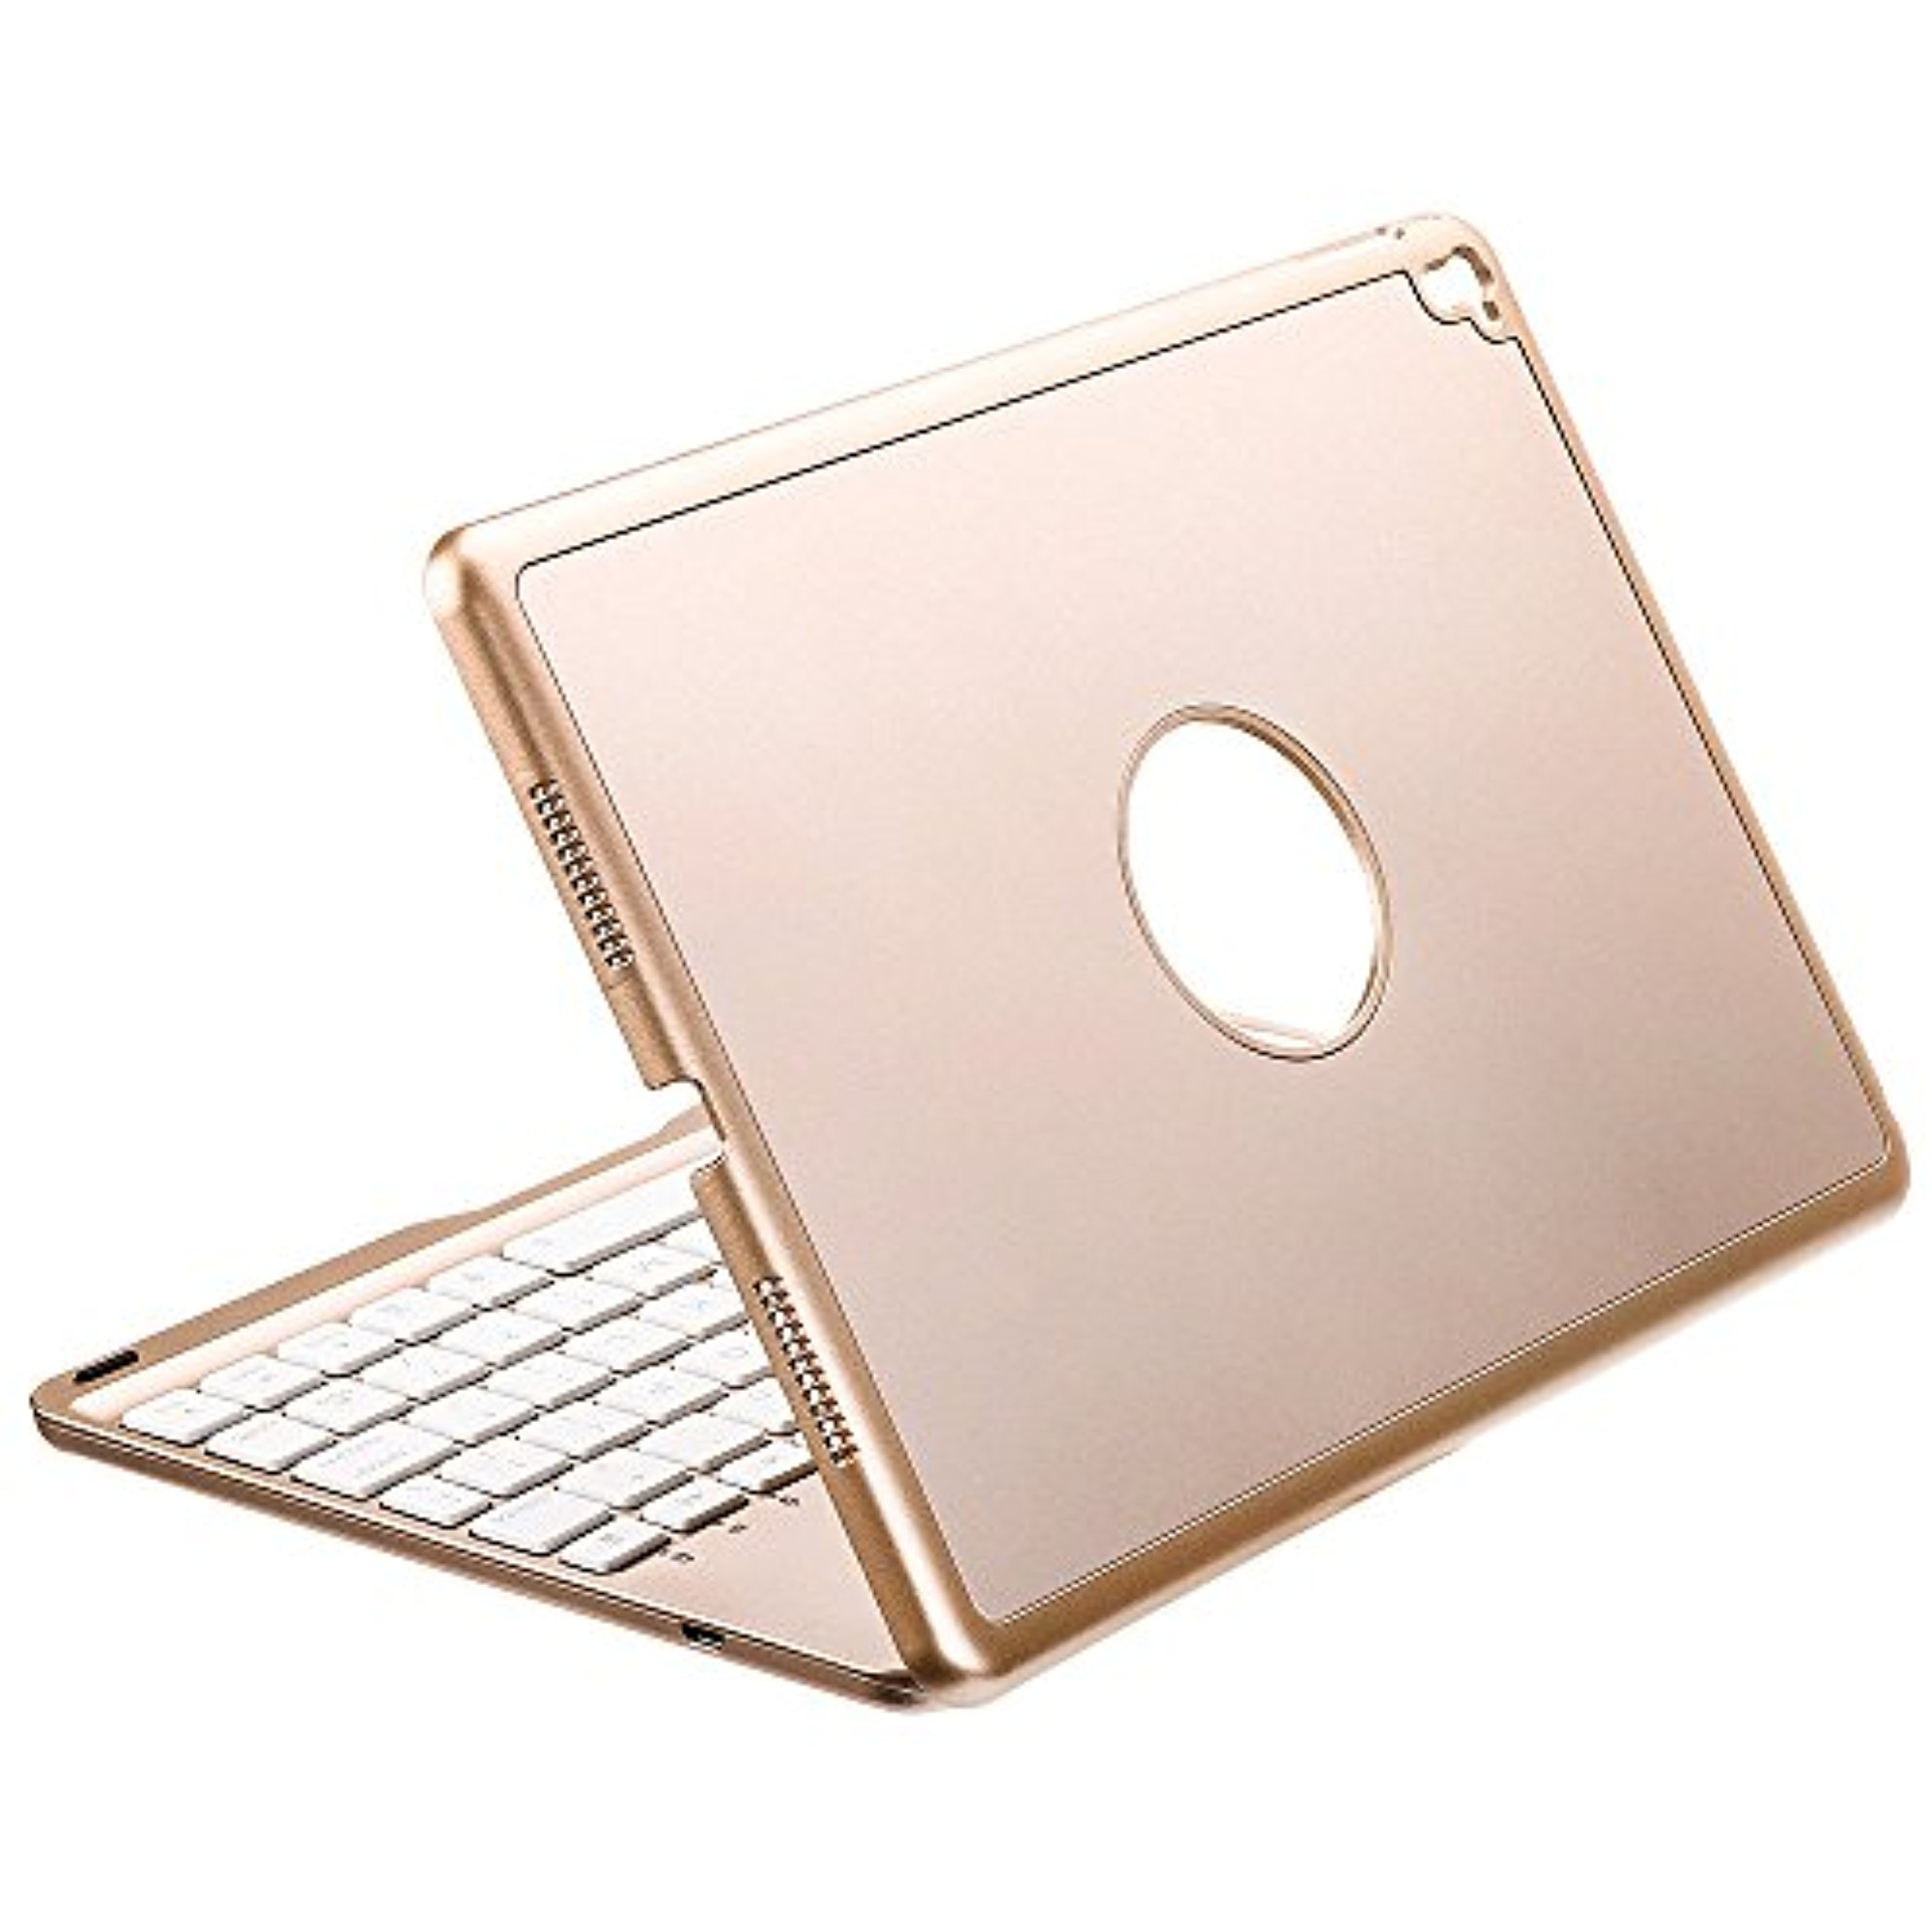 iEGrow F8Spro Portable Protective Bluetooth Keyboard Case for iPad Pro 9.7 Inches A1673 A1674 A1675,Rose Gold